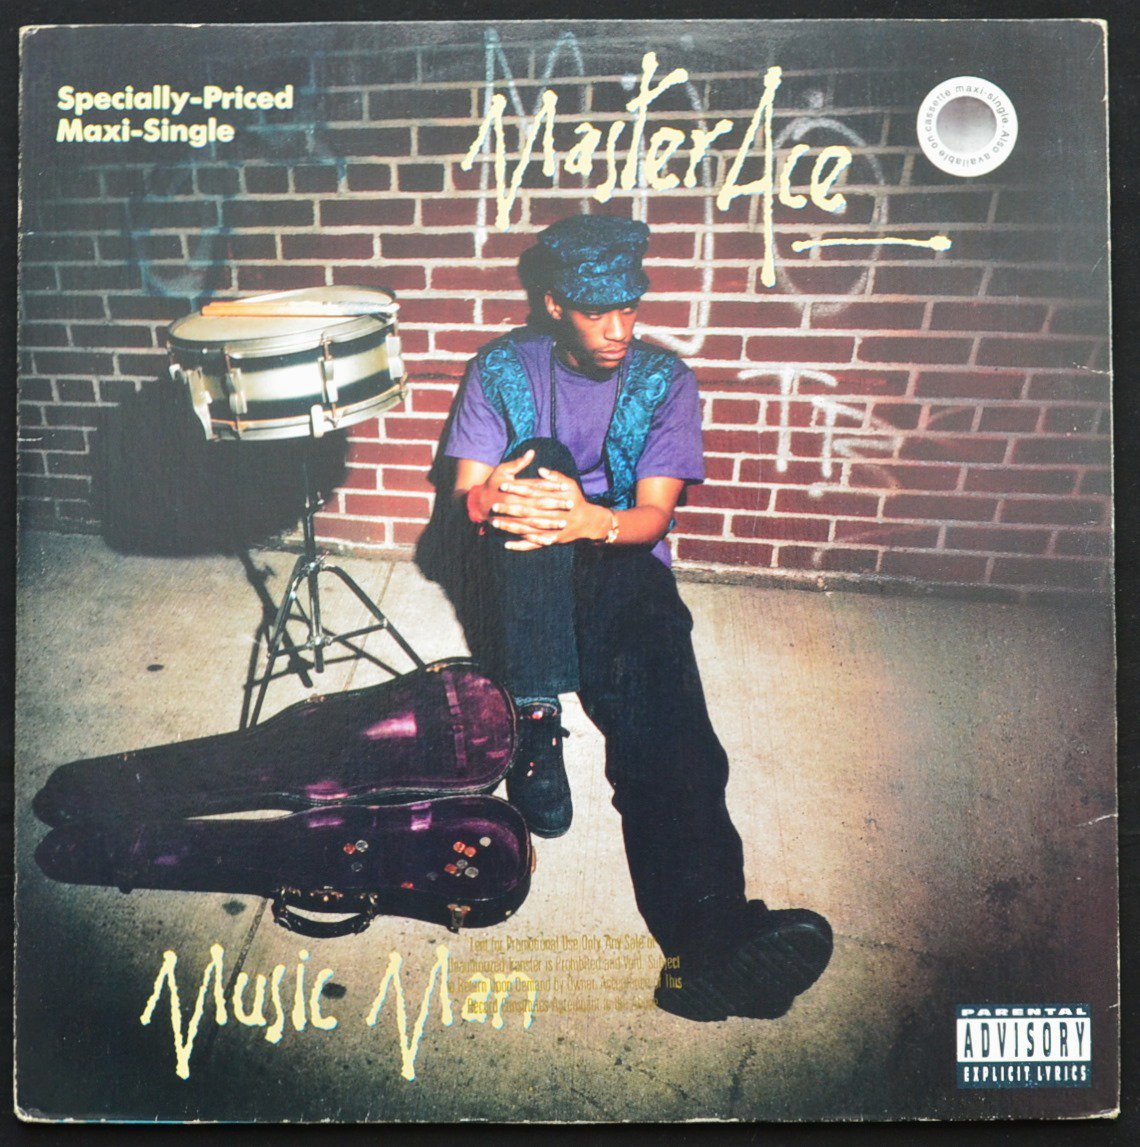 MASTER ACE / MUSIC MAN / ACE IZ WILD (PROD BY MARLEY MARL) (12